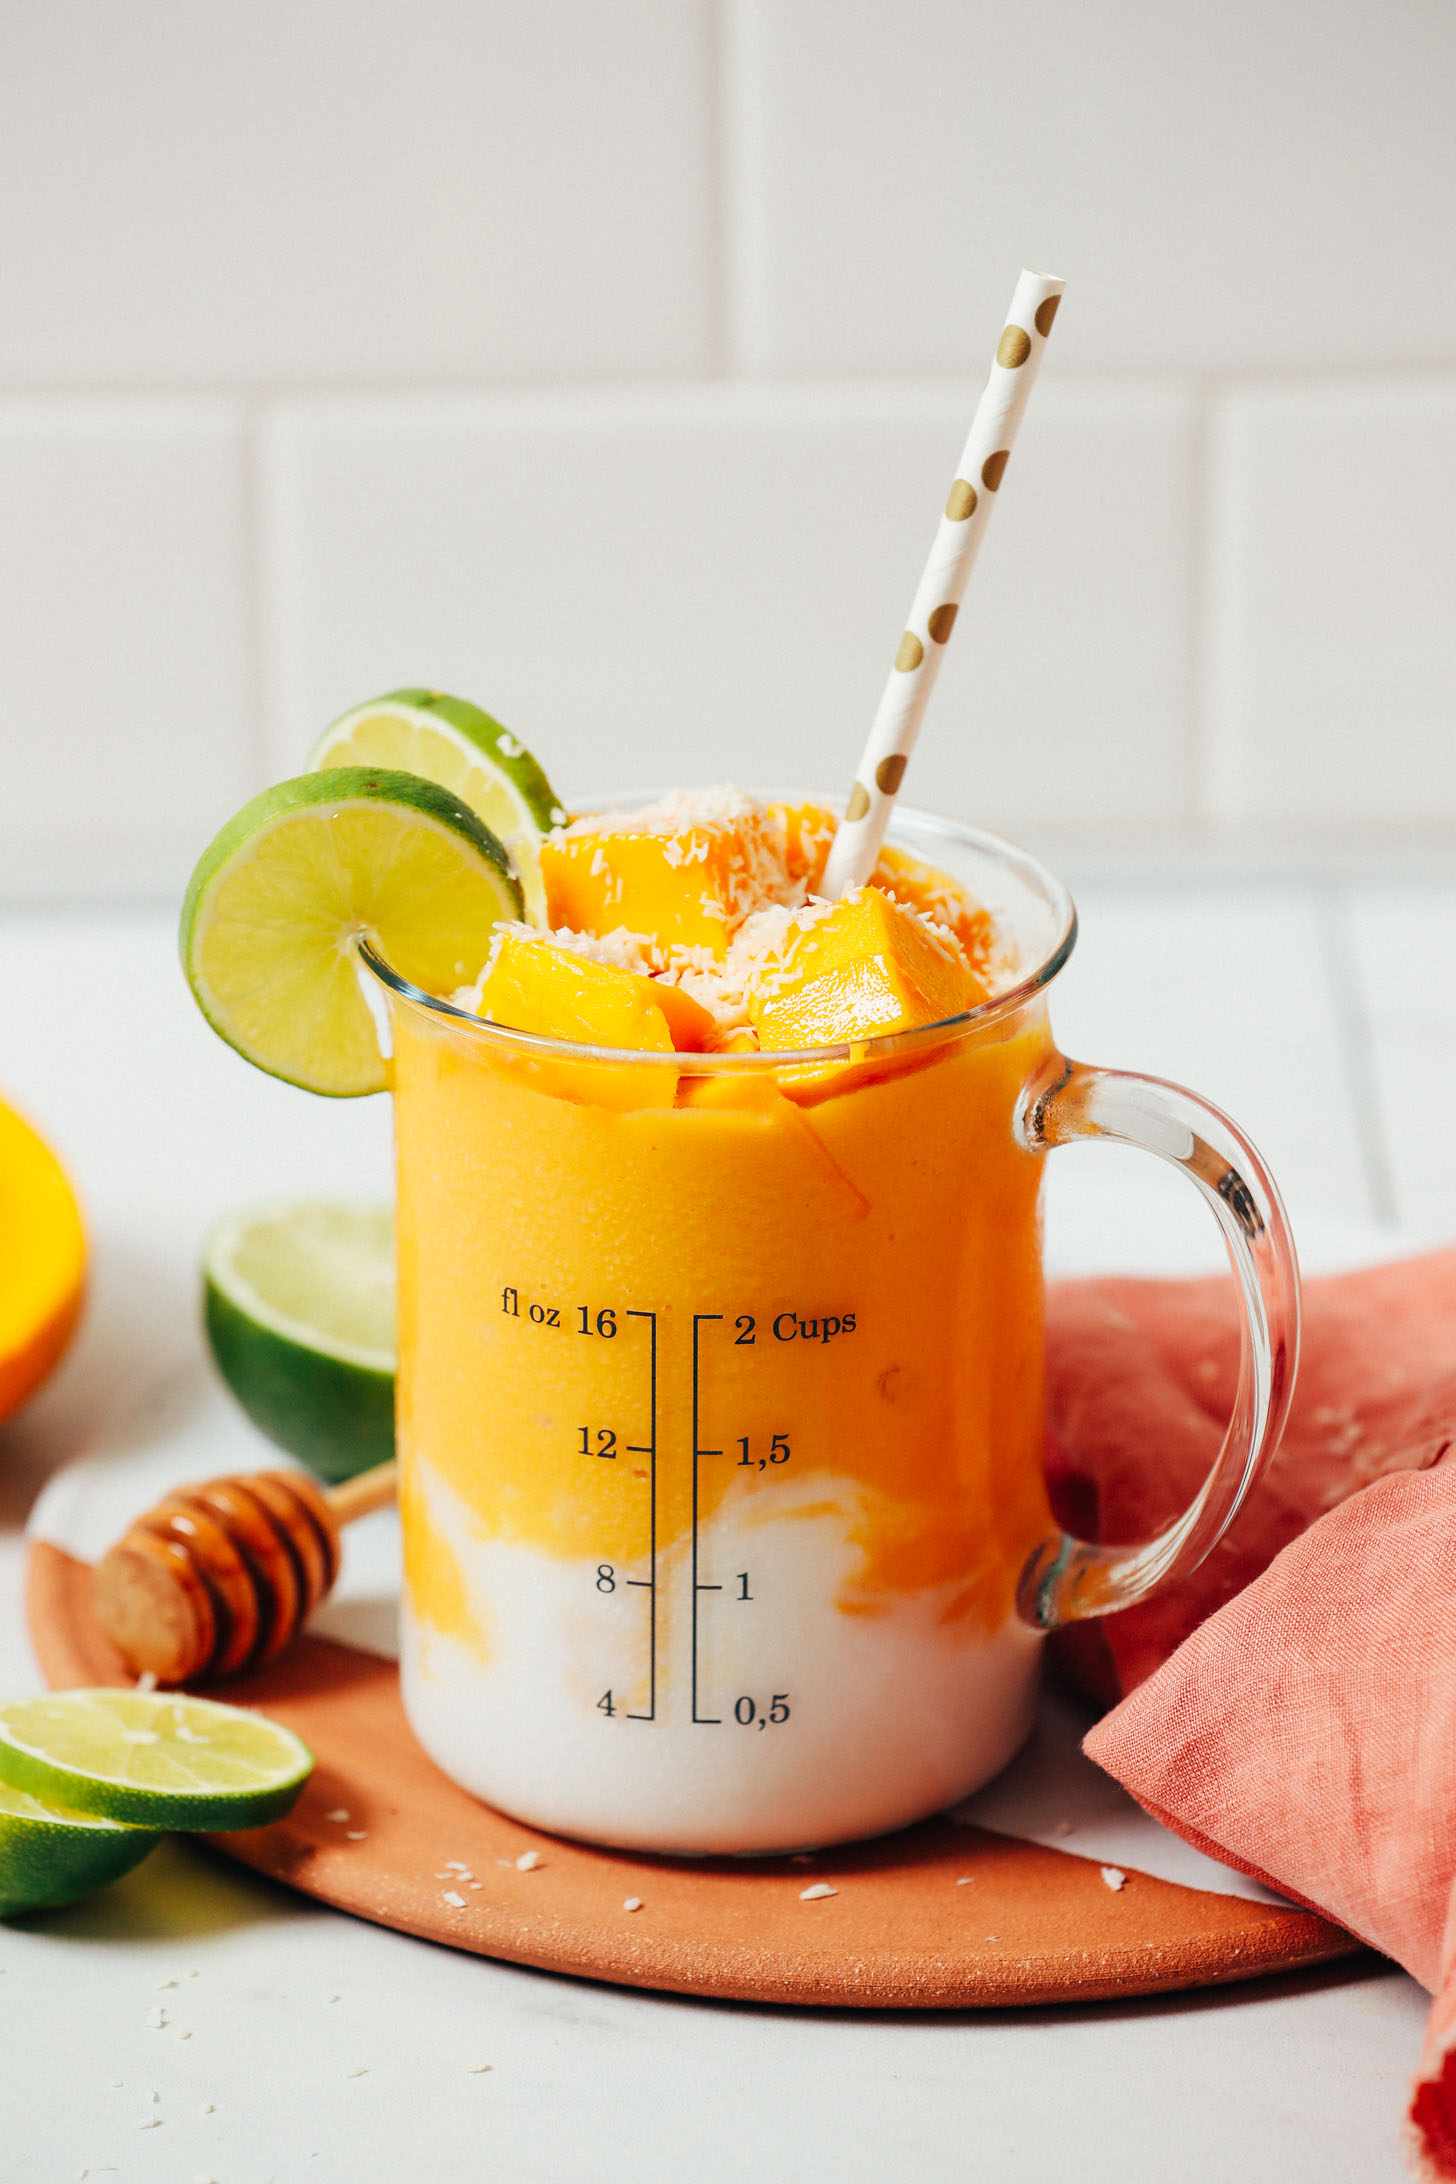 Measuring glass of our Mango Lassi Smoothie topped with coconut, mango chunks, and lime